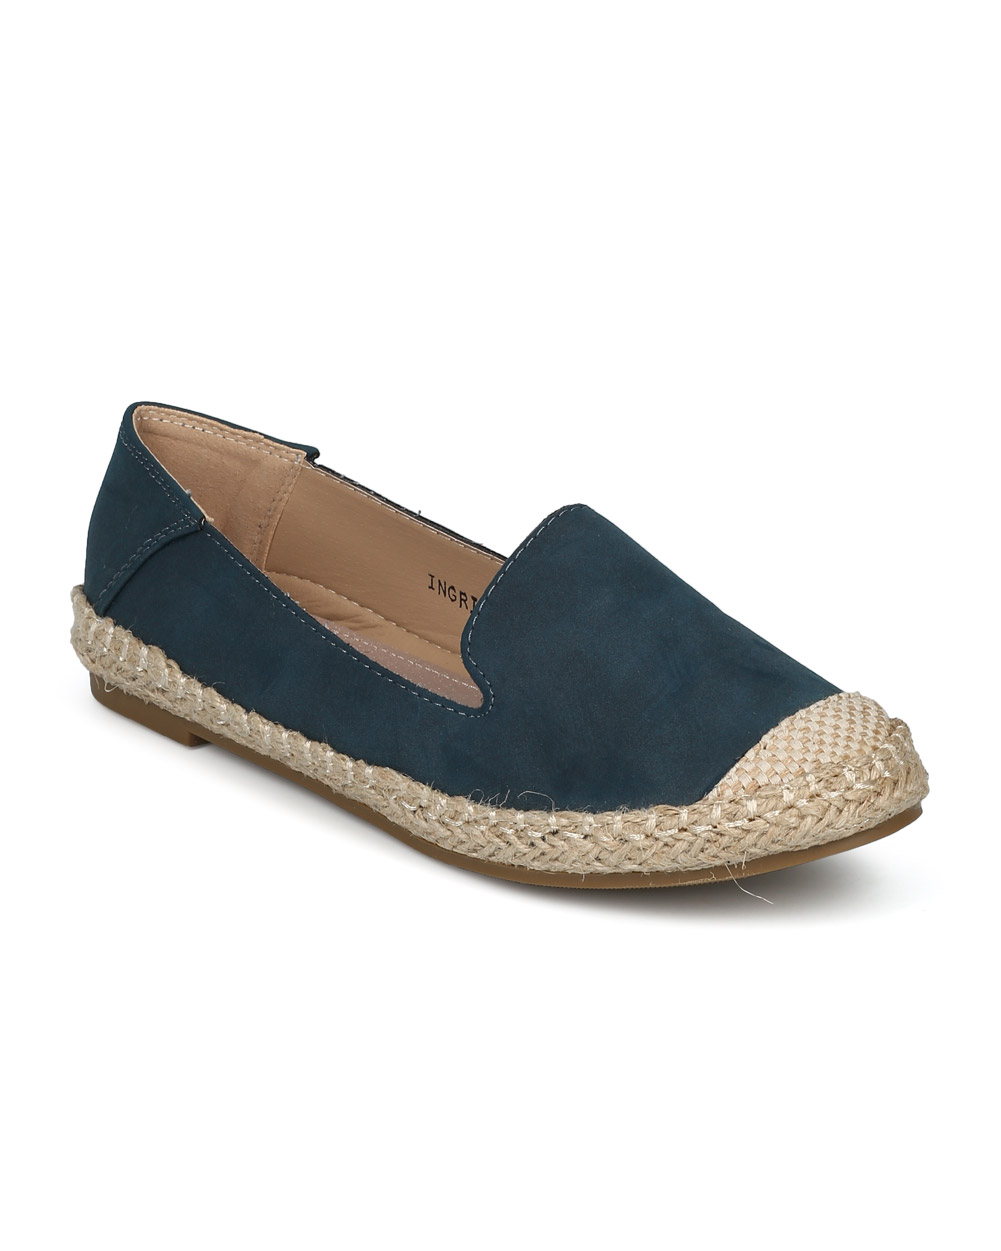 New Women Refresh Ingrid-02 Mixed Media Capped Toe Espadrille Slip On Flat